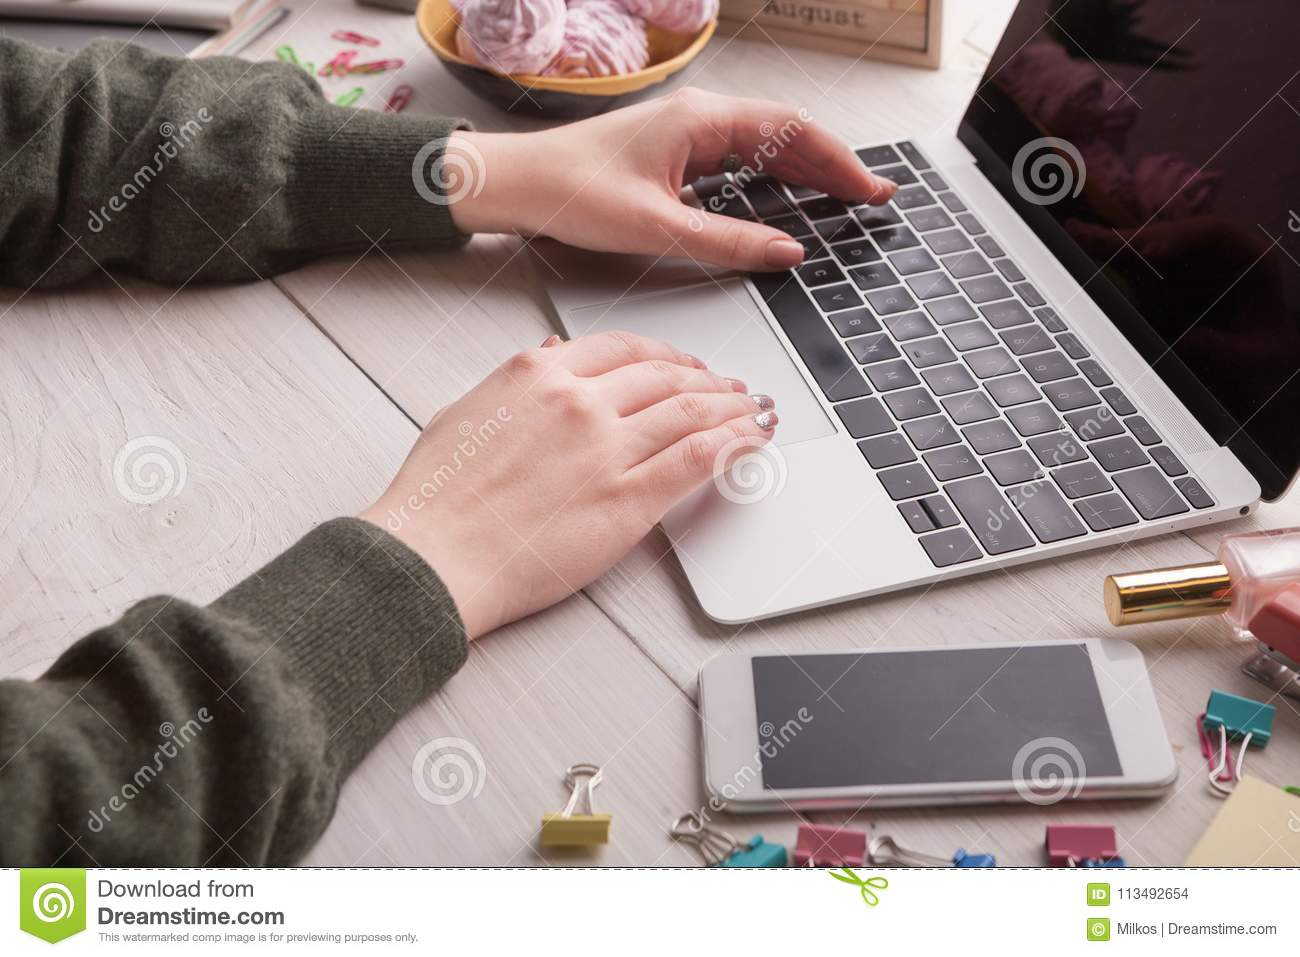 Closeup Of Female Hands Typing On Laptop Keyboard Stock